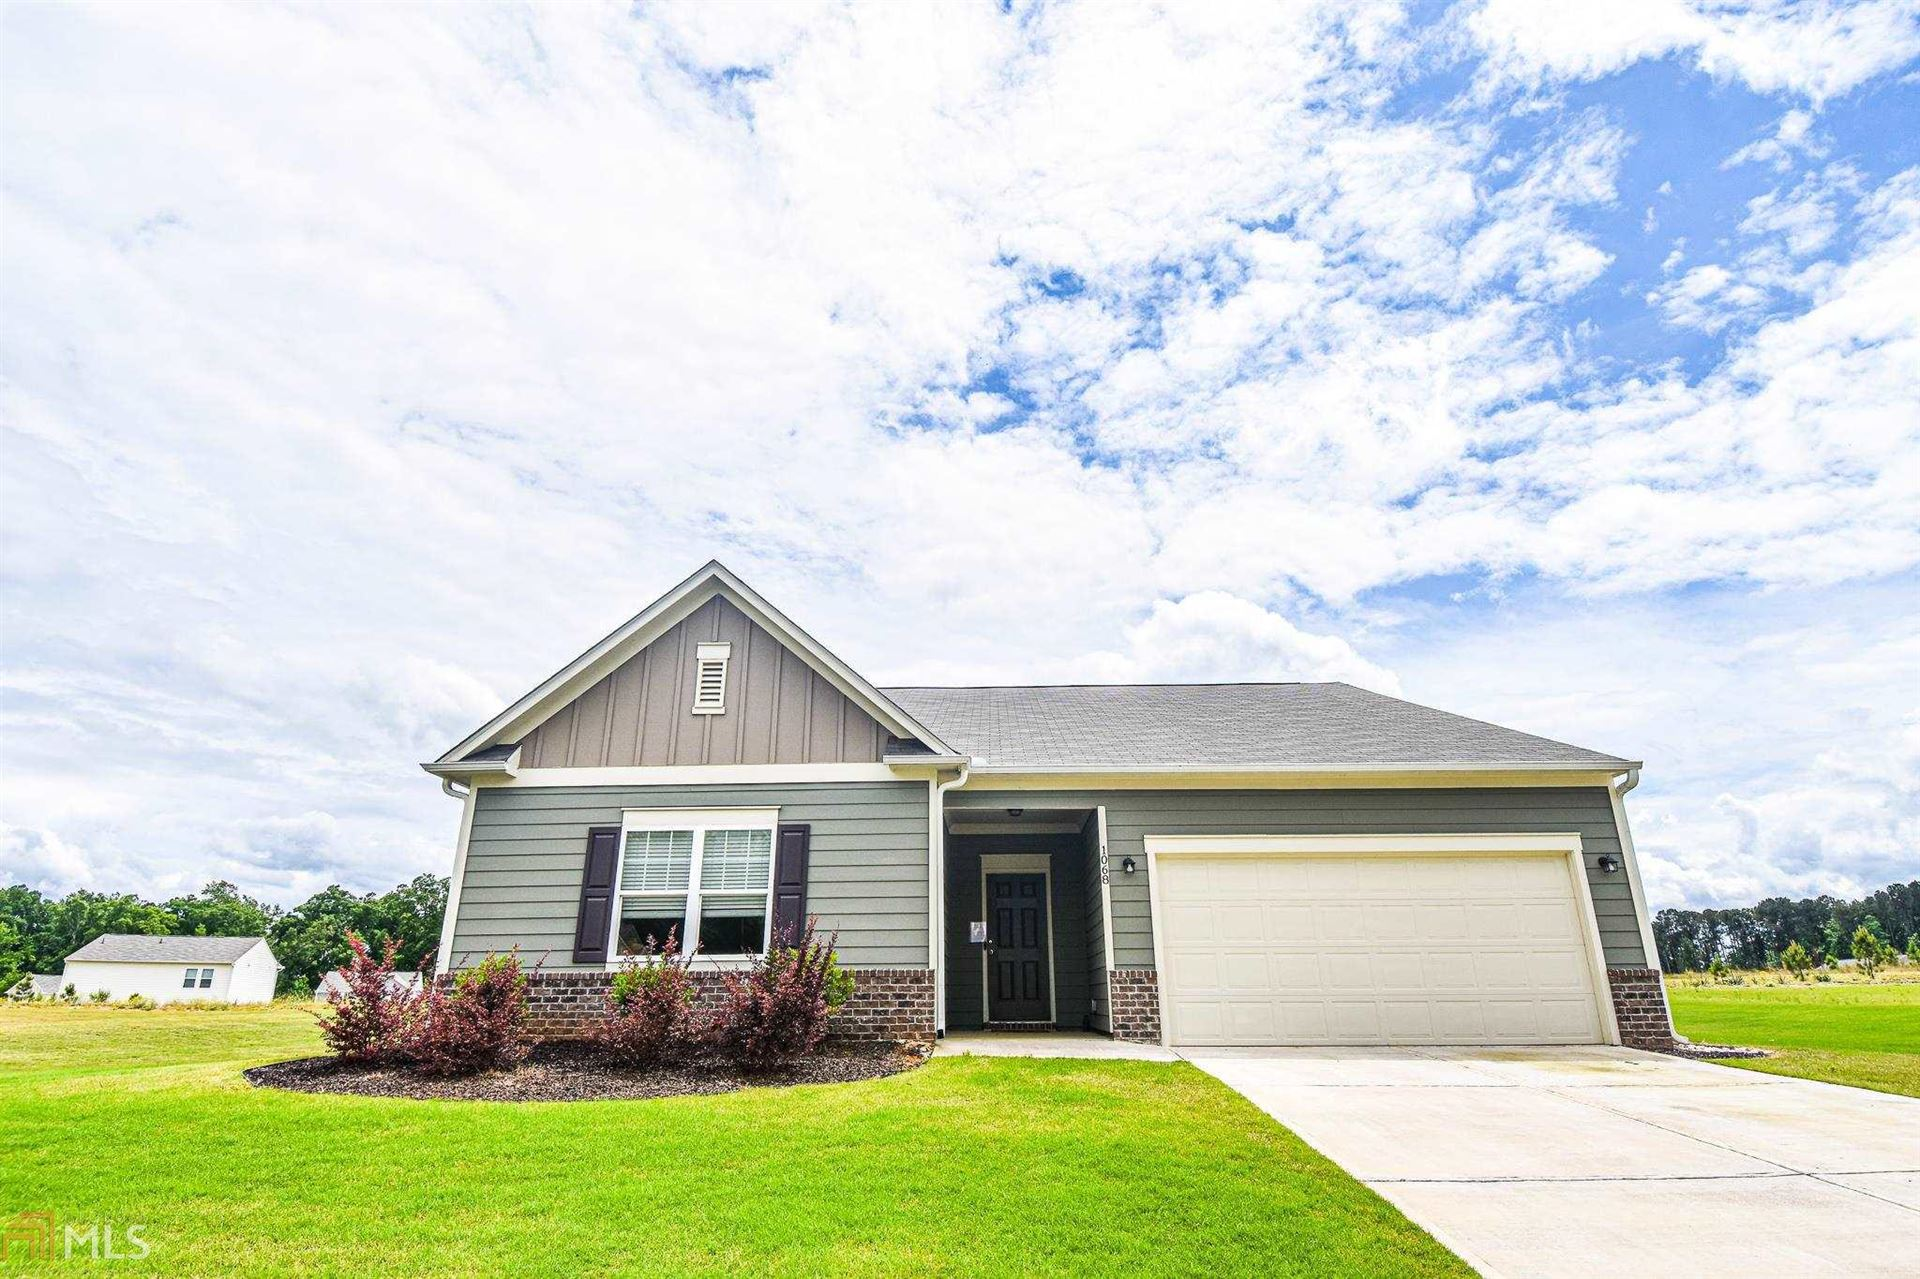 1068 Coldwater Dr, Griffin, GA 30224 - #: 8976081